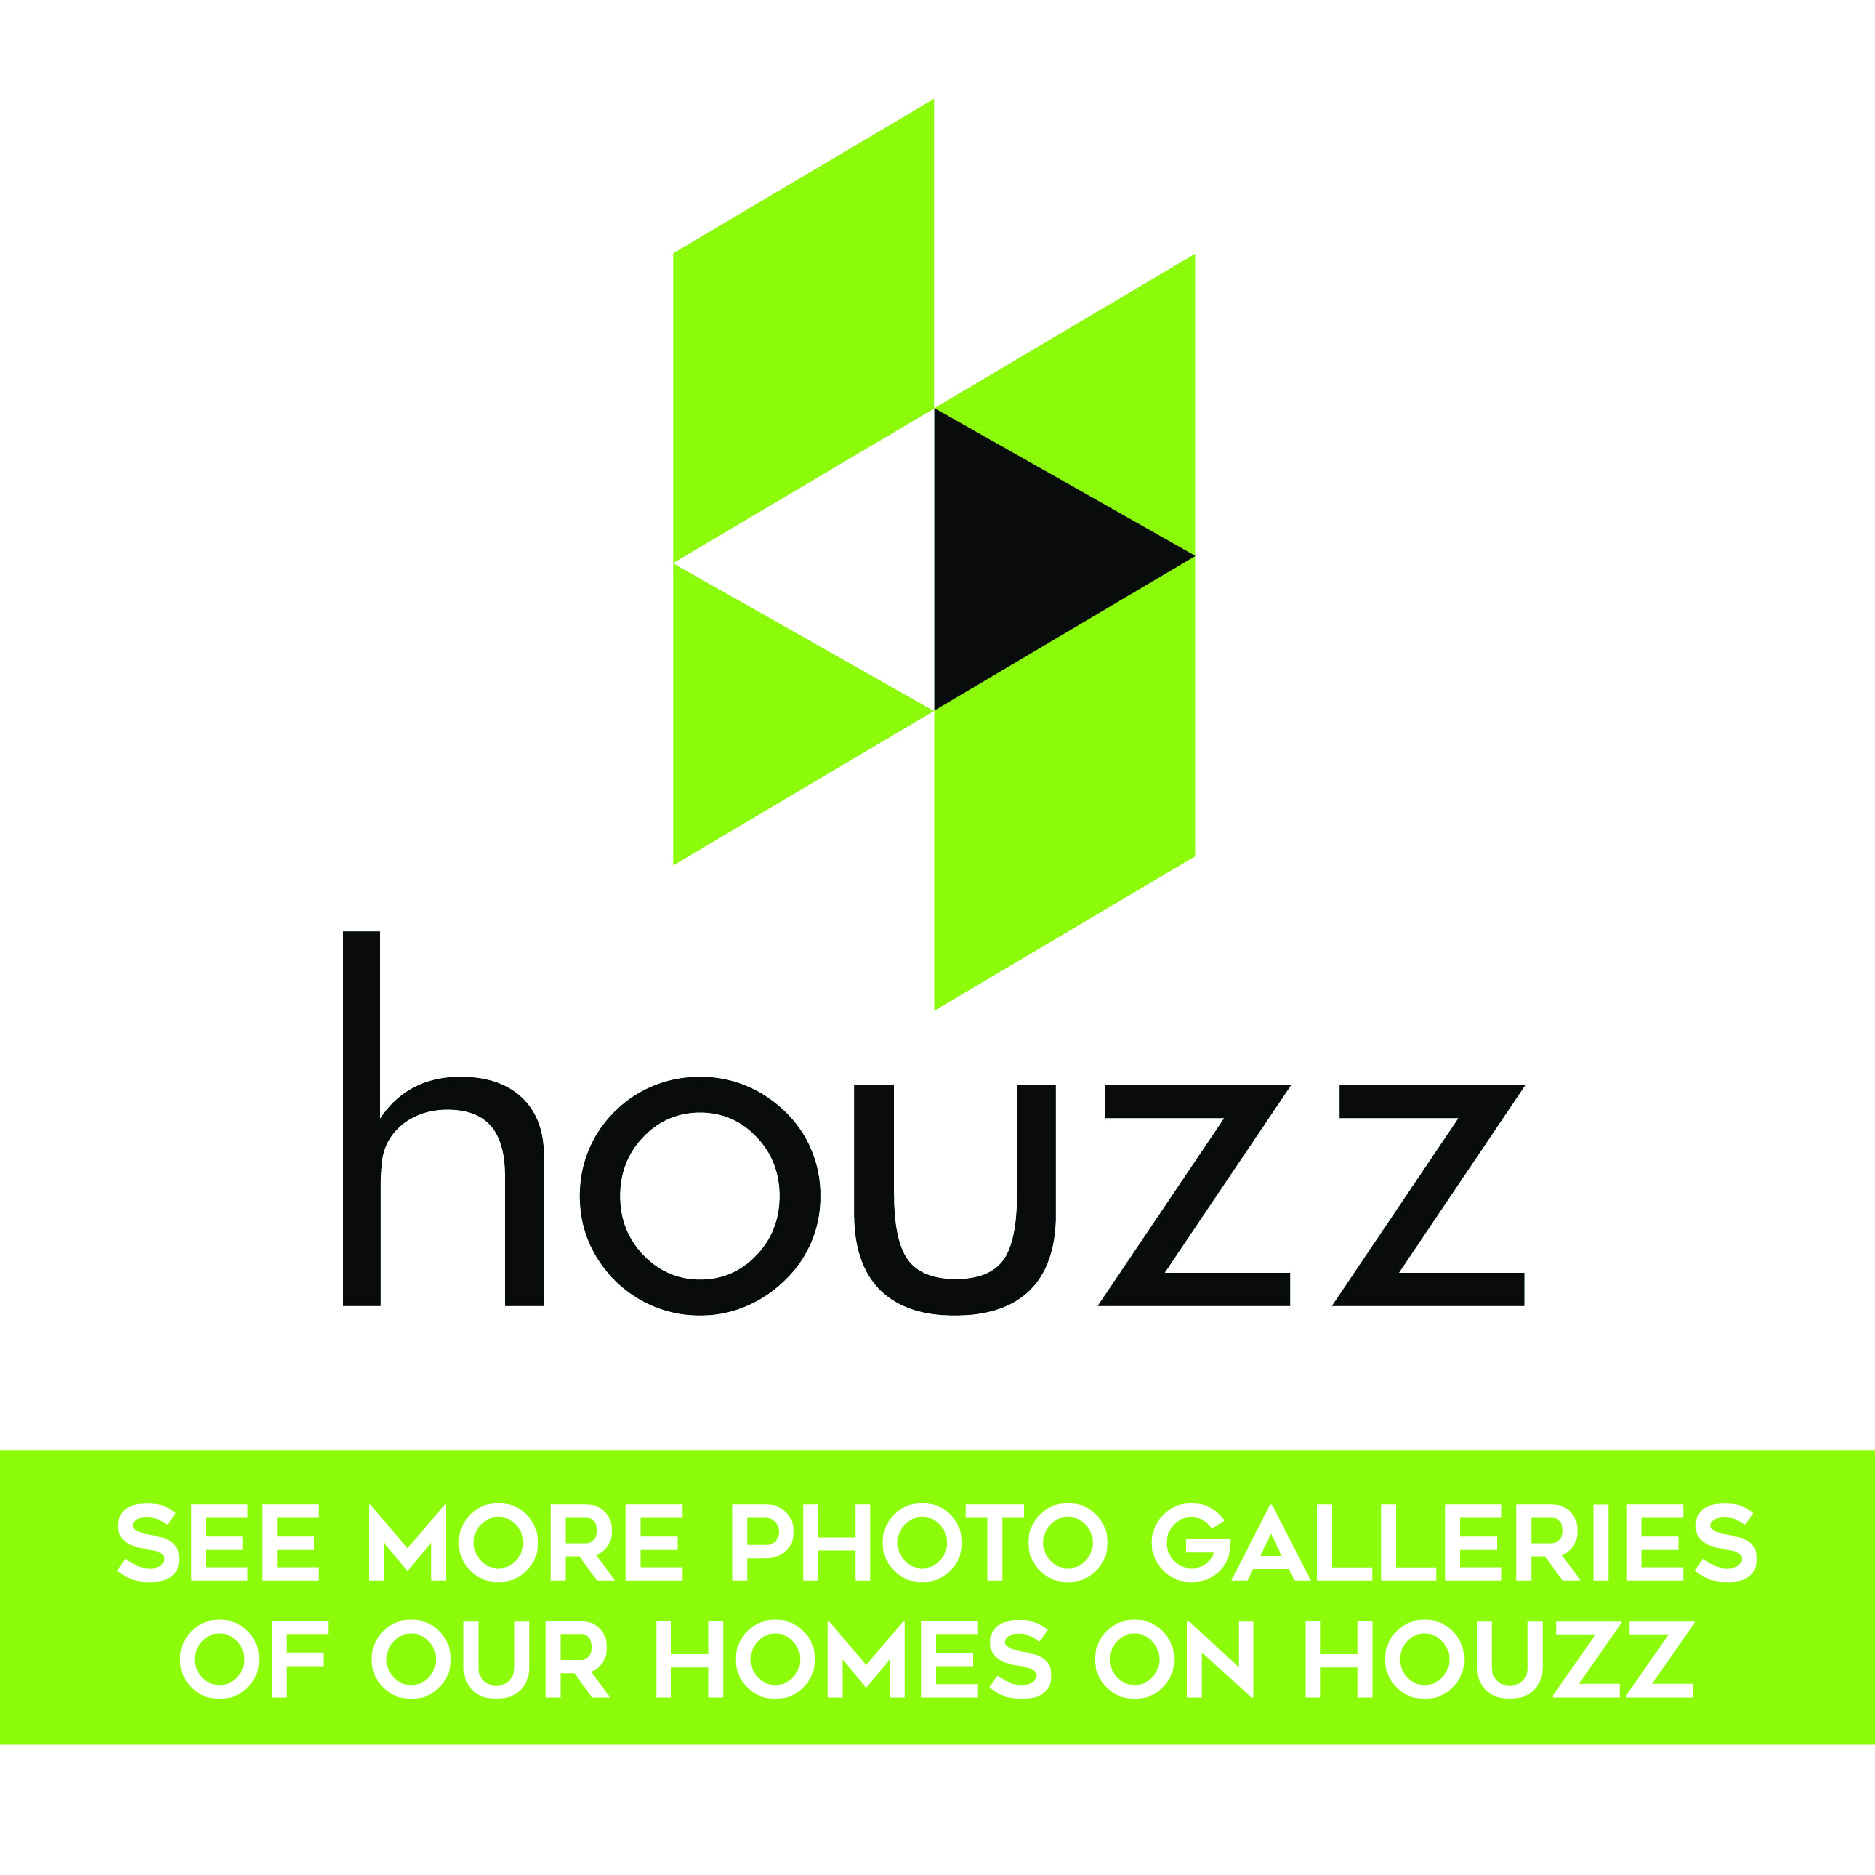 Visit Ball Homes on Houzz for more photos and idea galleries